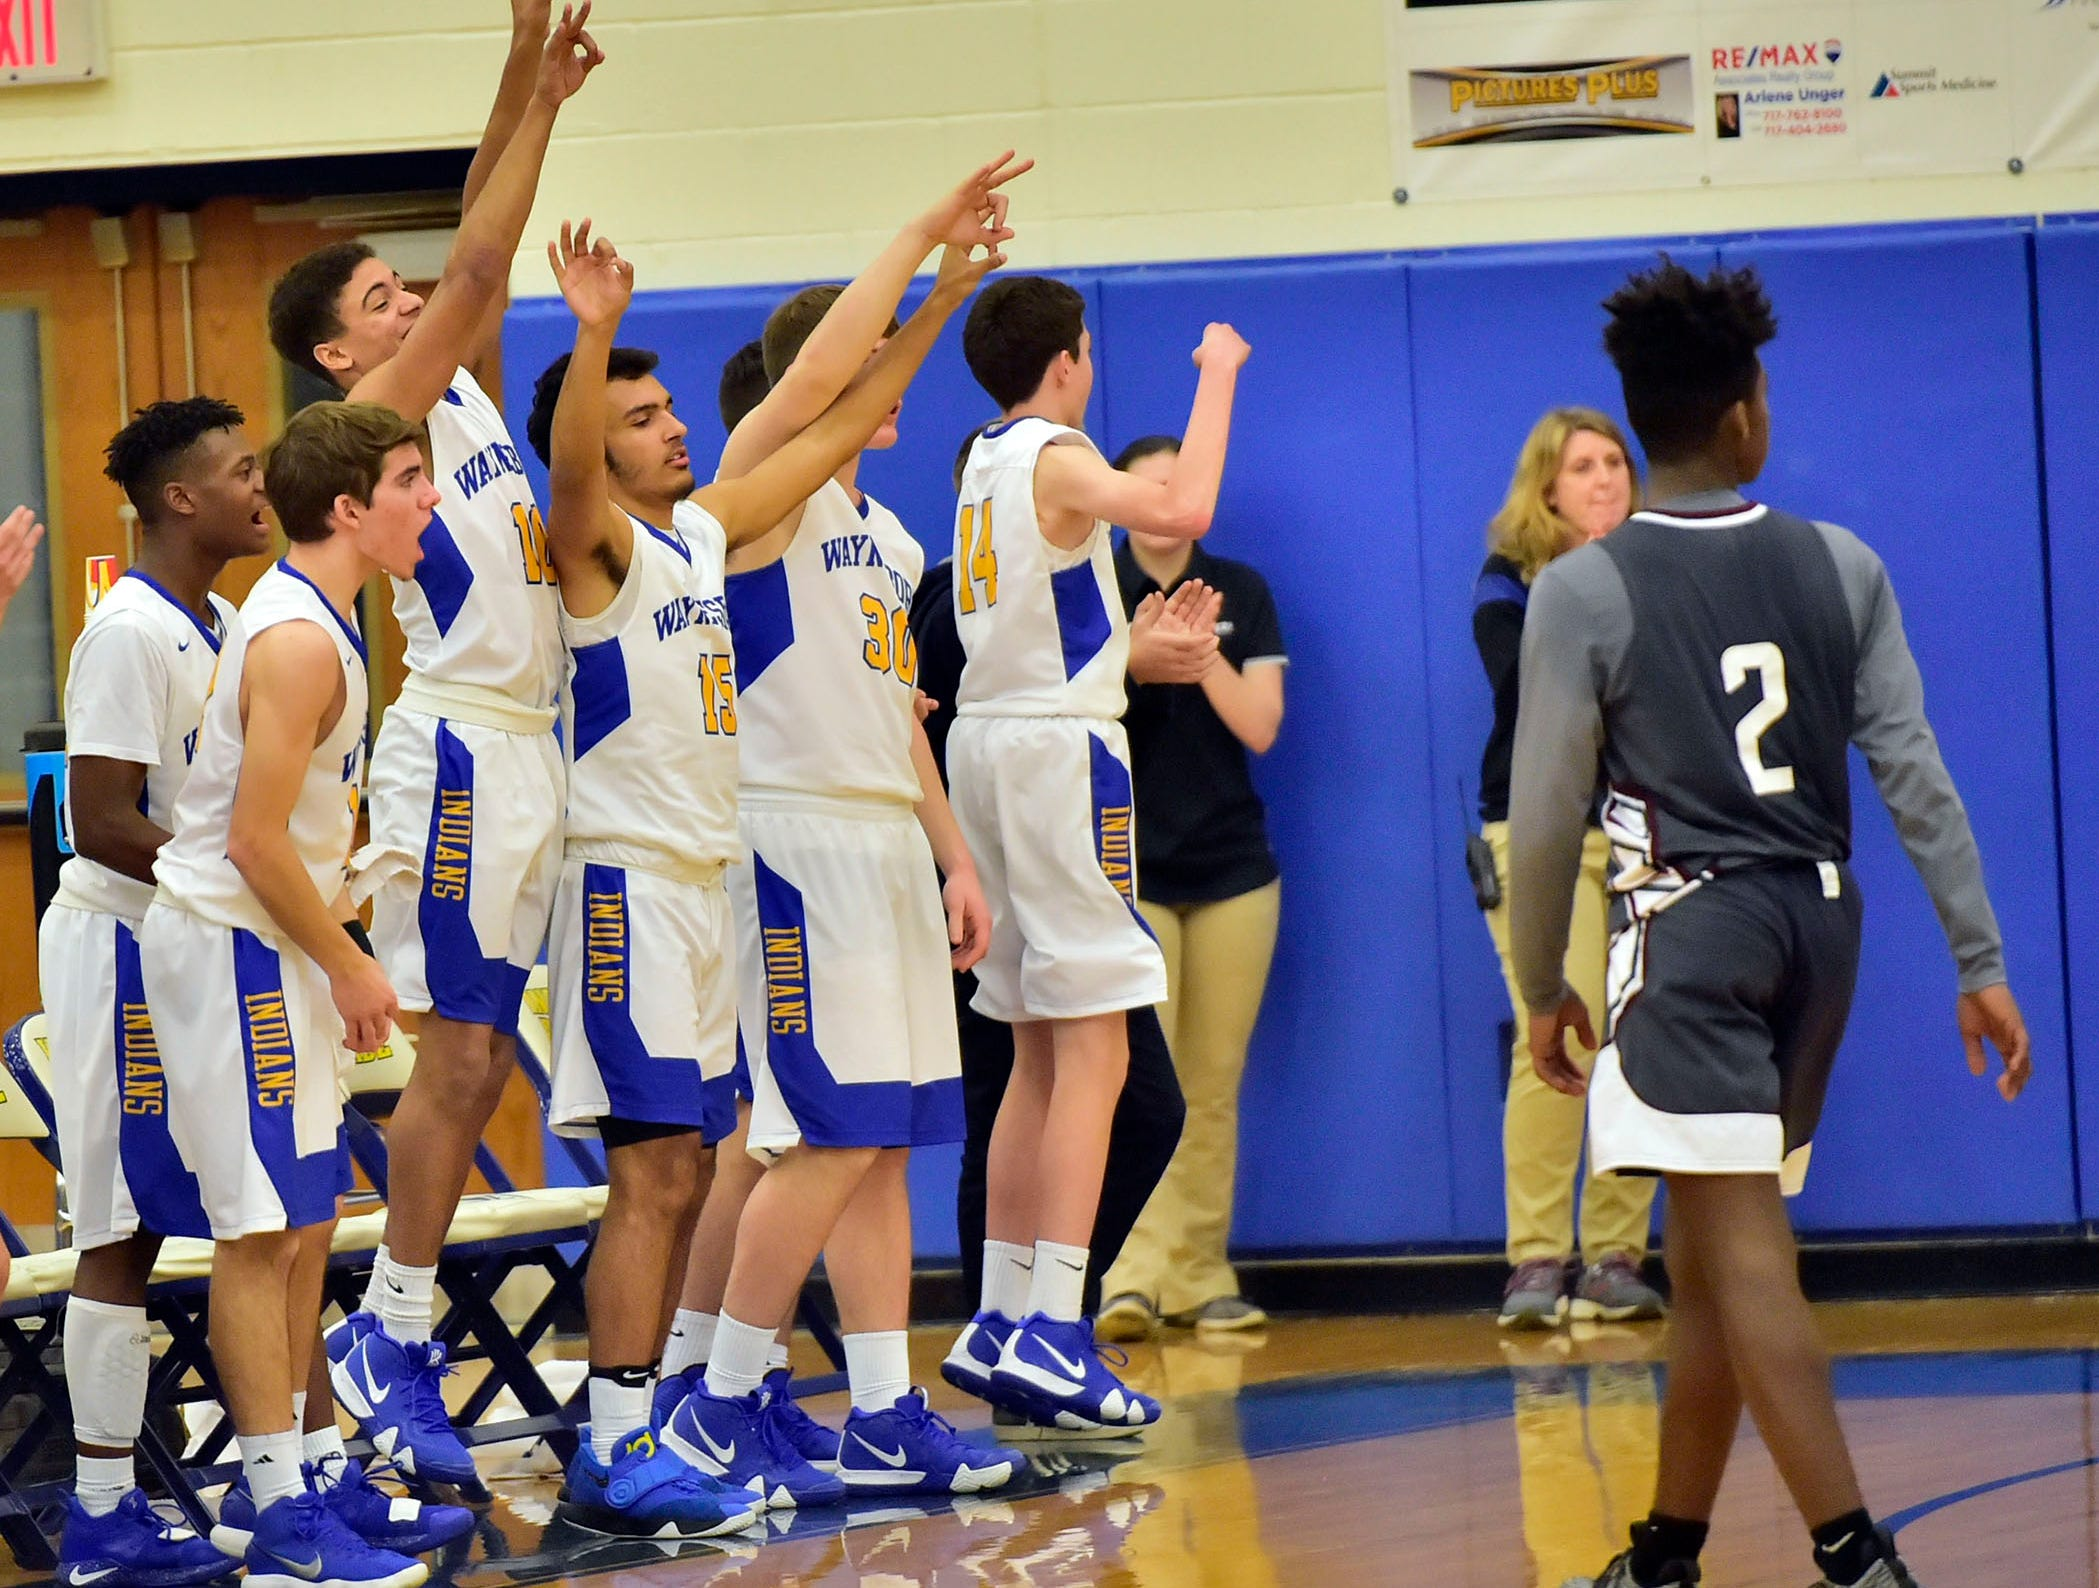 Indians teammates celebrate a score. Waynesboro defeated Shippensburg 72-59 during a home game.